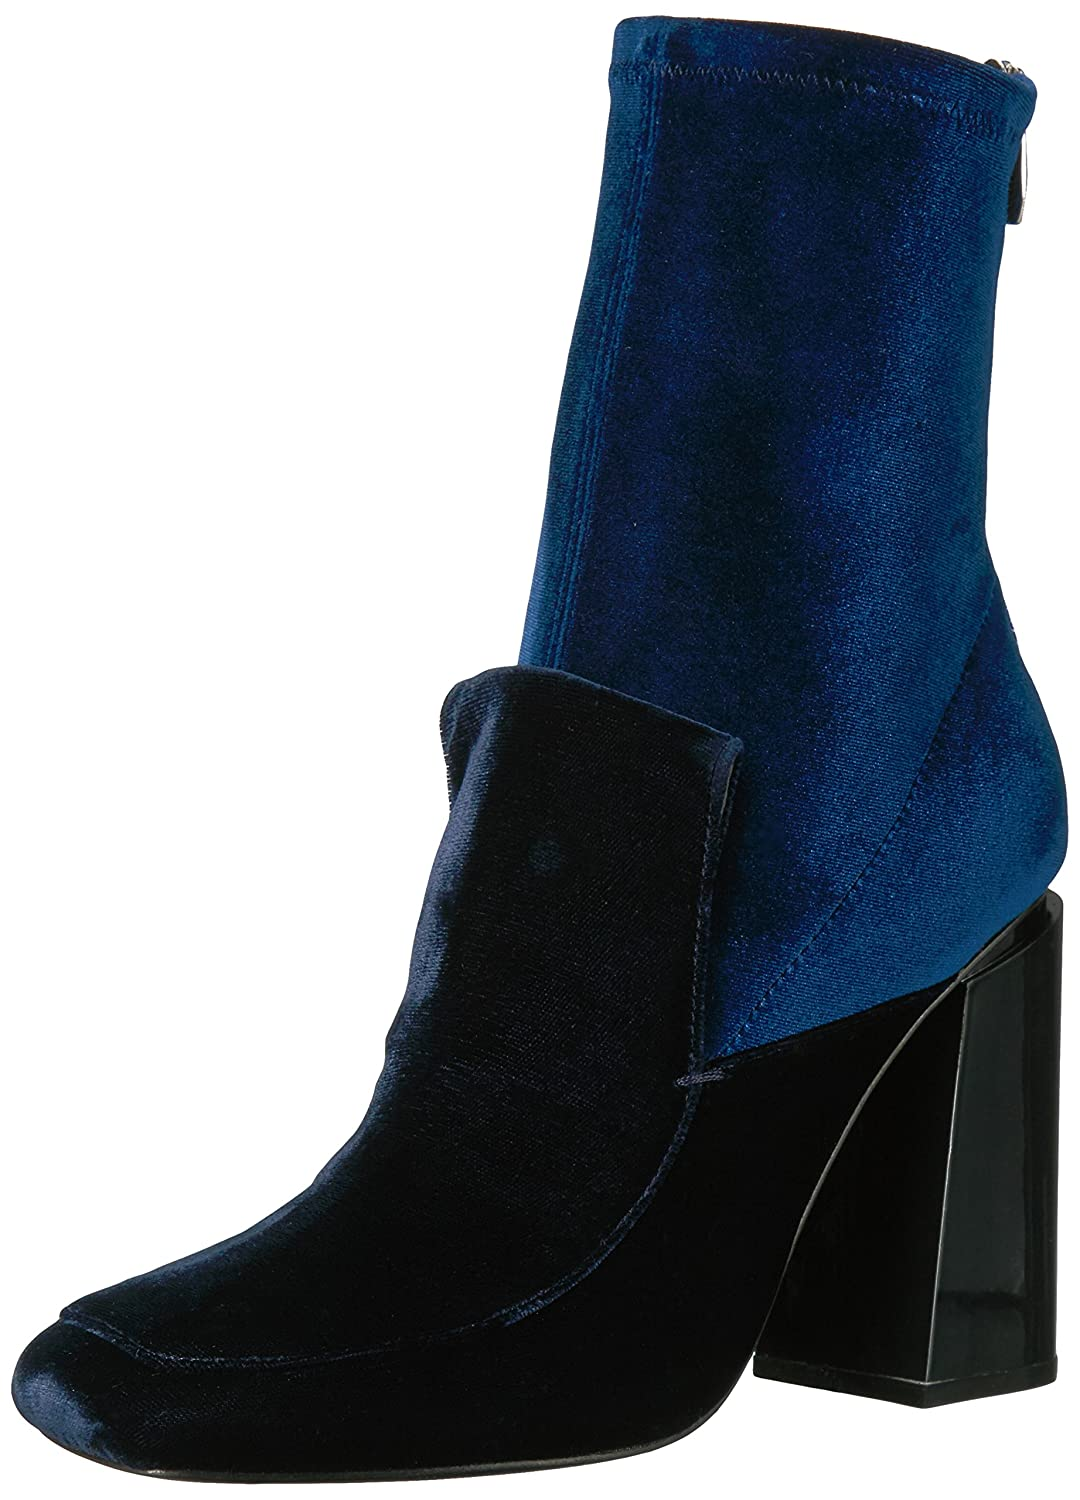 Sigerson Morrison Women's JOANNA2 Ankle Boot B06XCMGRHK 10 B(M) US|Blu Notte